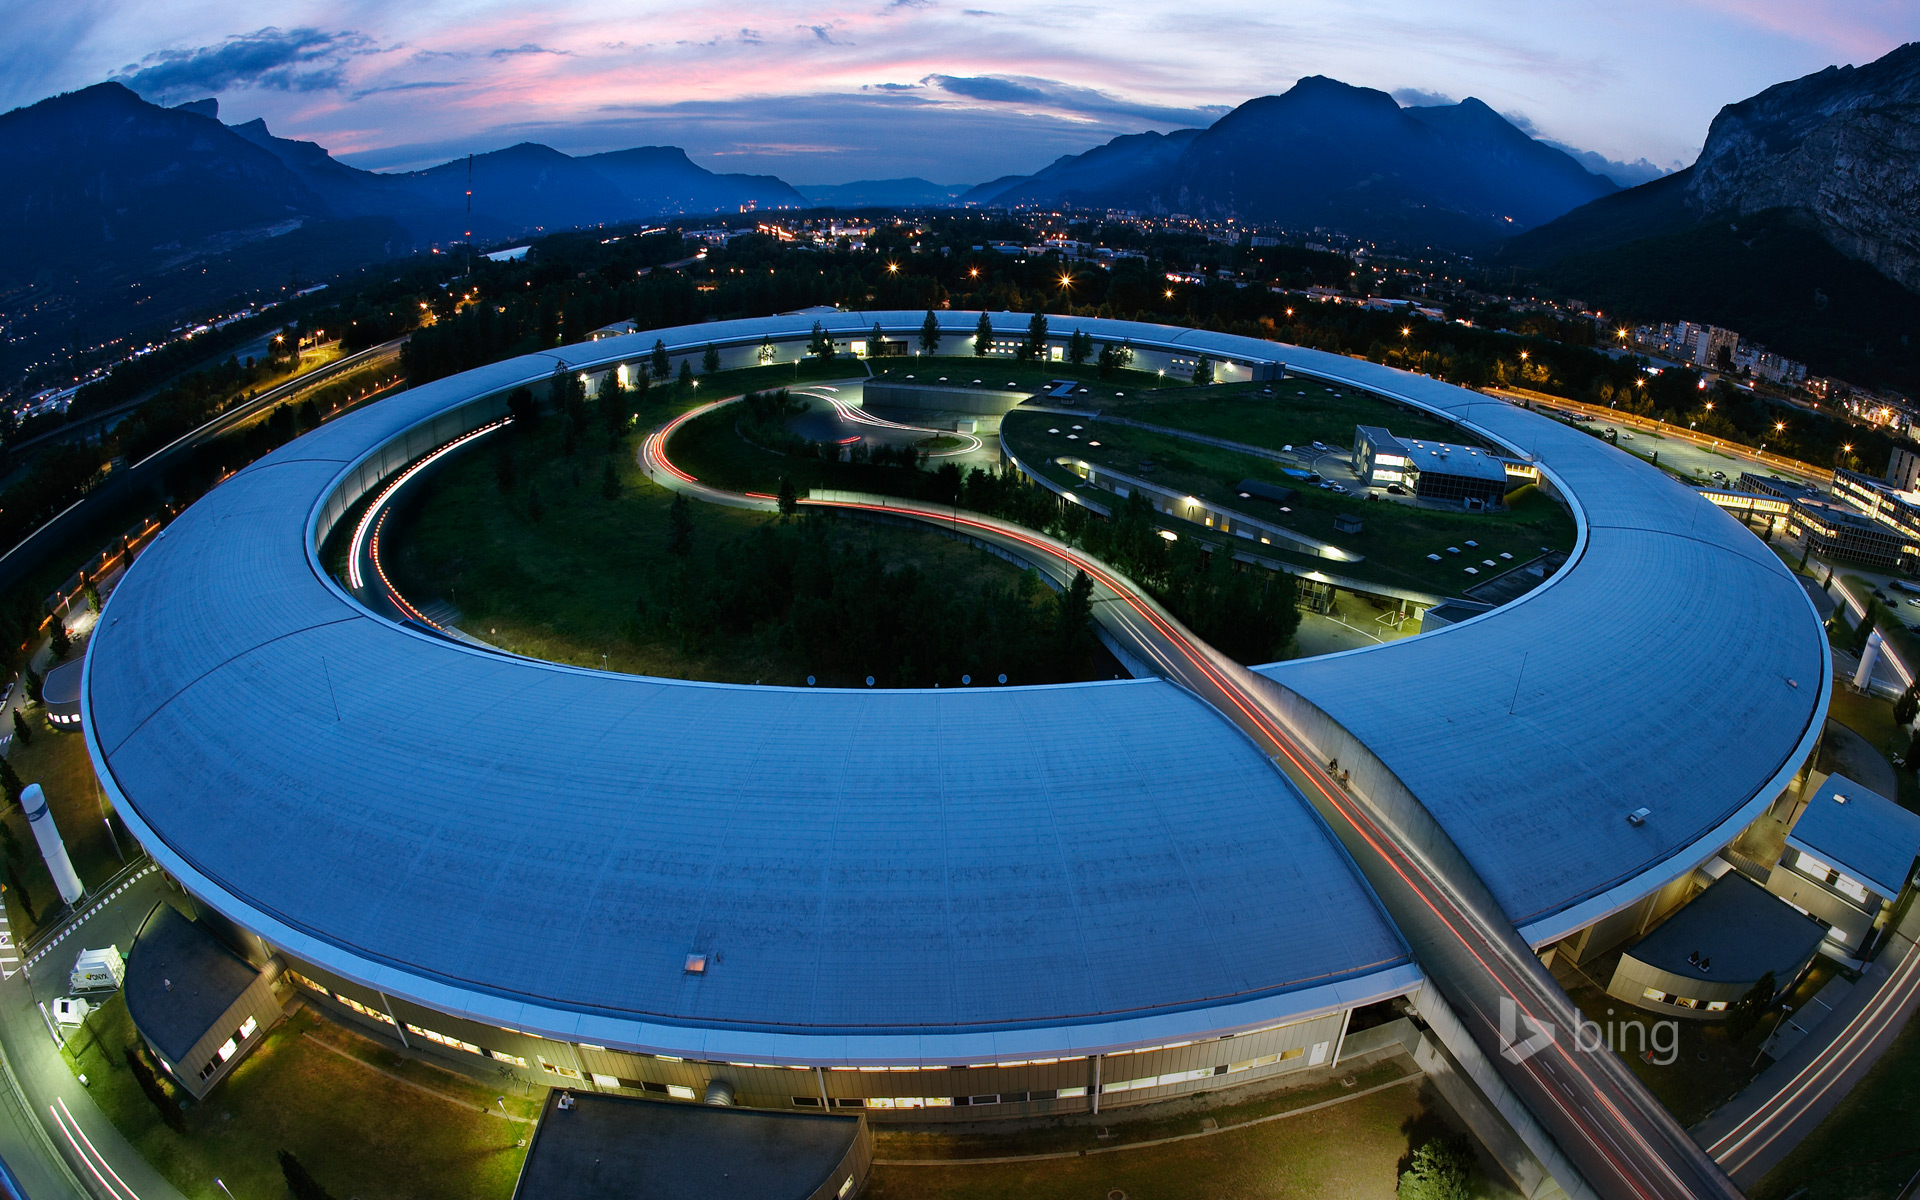 The European Synchrotron Radiation Facility, Grenoble, France